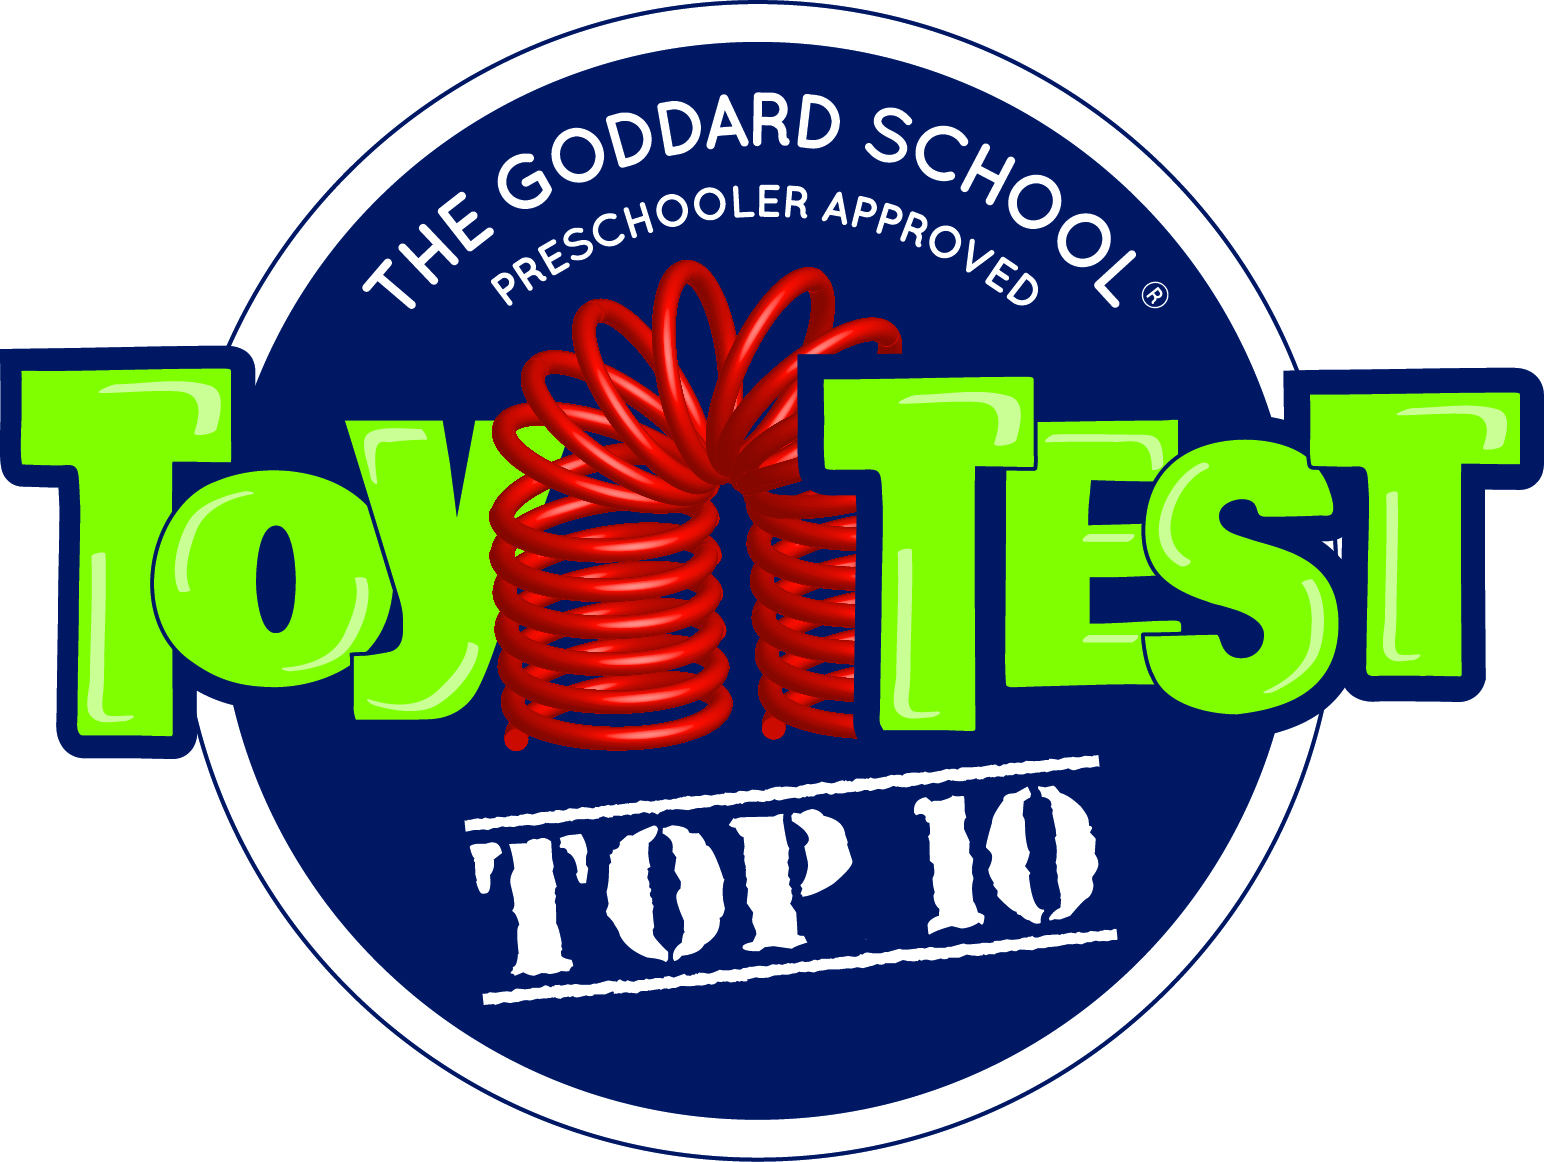 Top 10 Winner in The Goddard School Preschooler